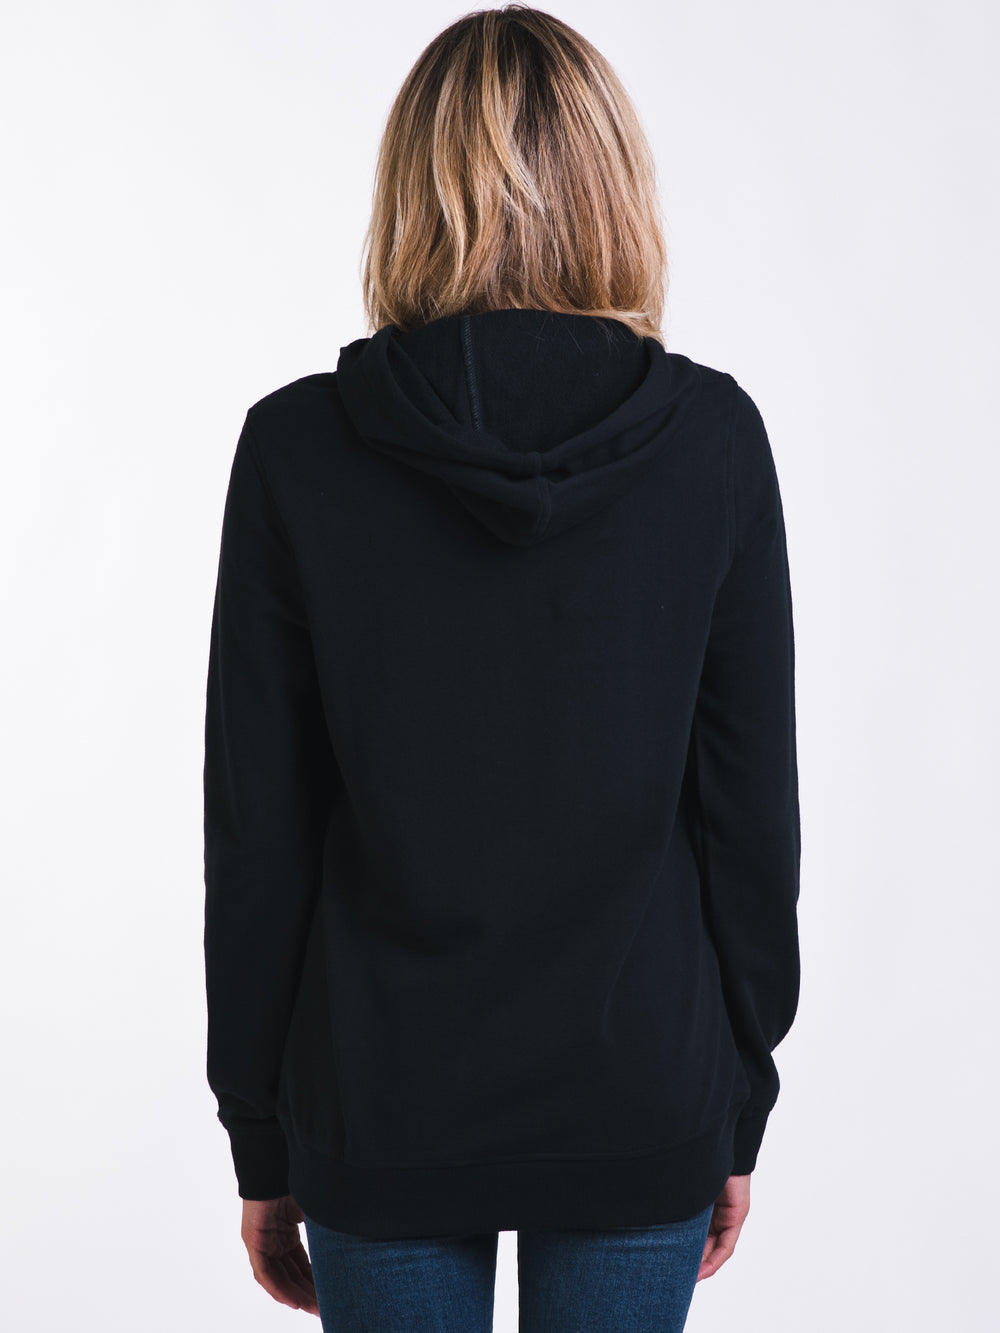 WOMENS RETRO PULLOVER HOODY - BLACK - CLEARANCE